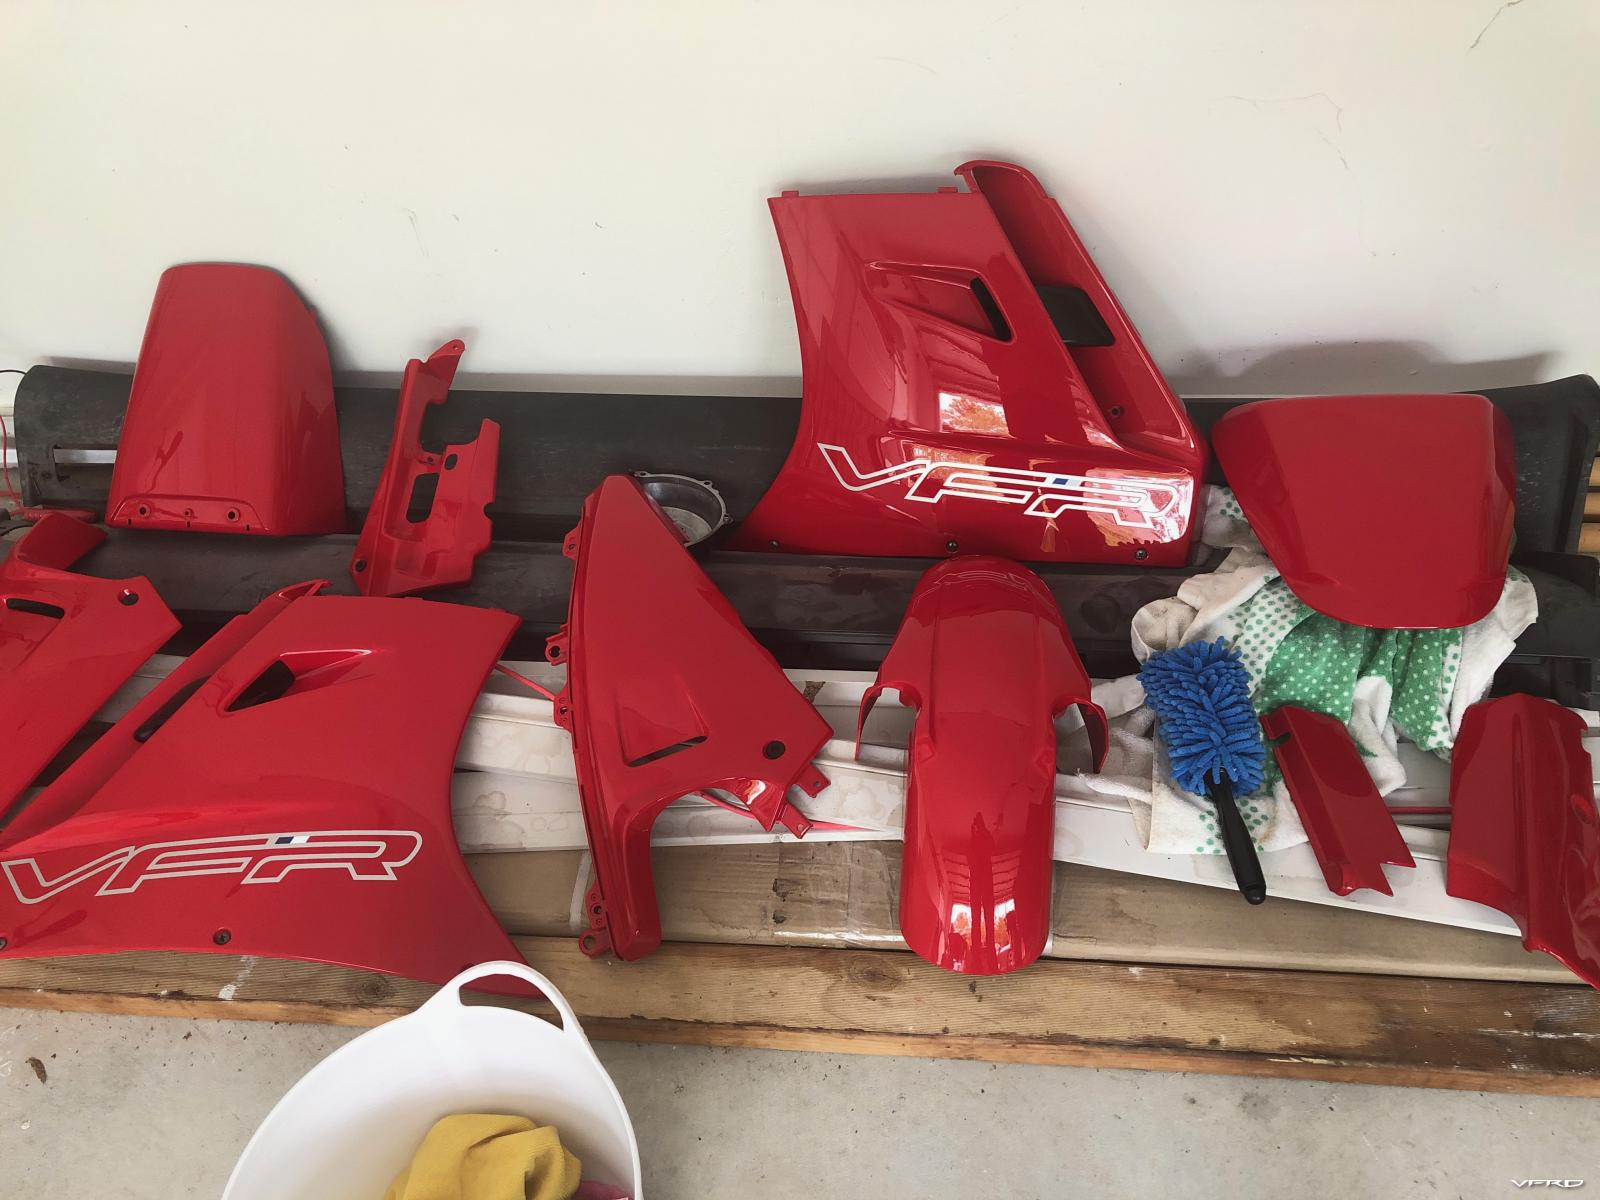 vfr750 painted fairing pieces before installation